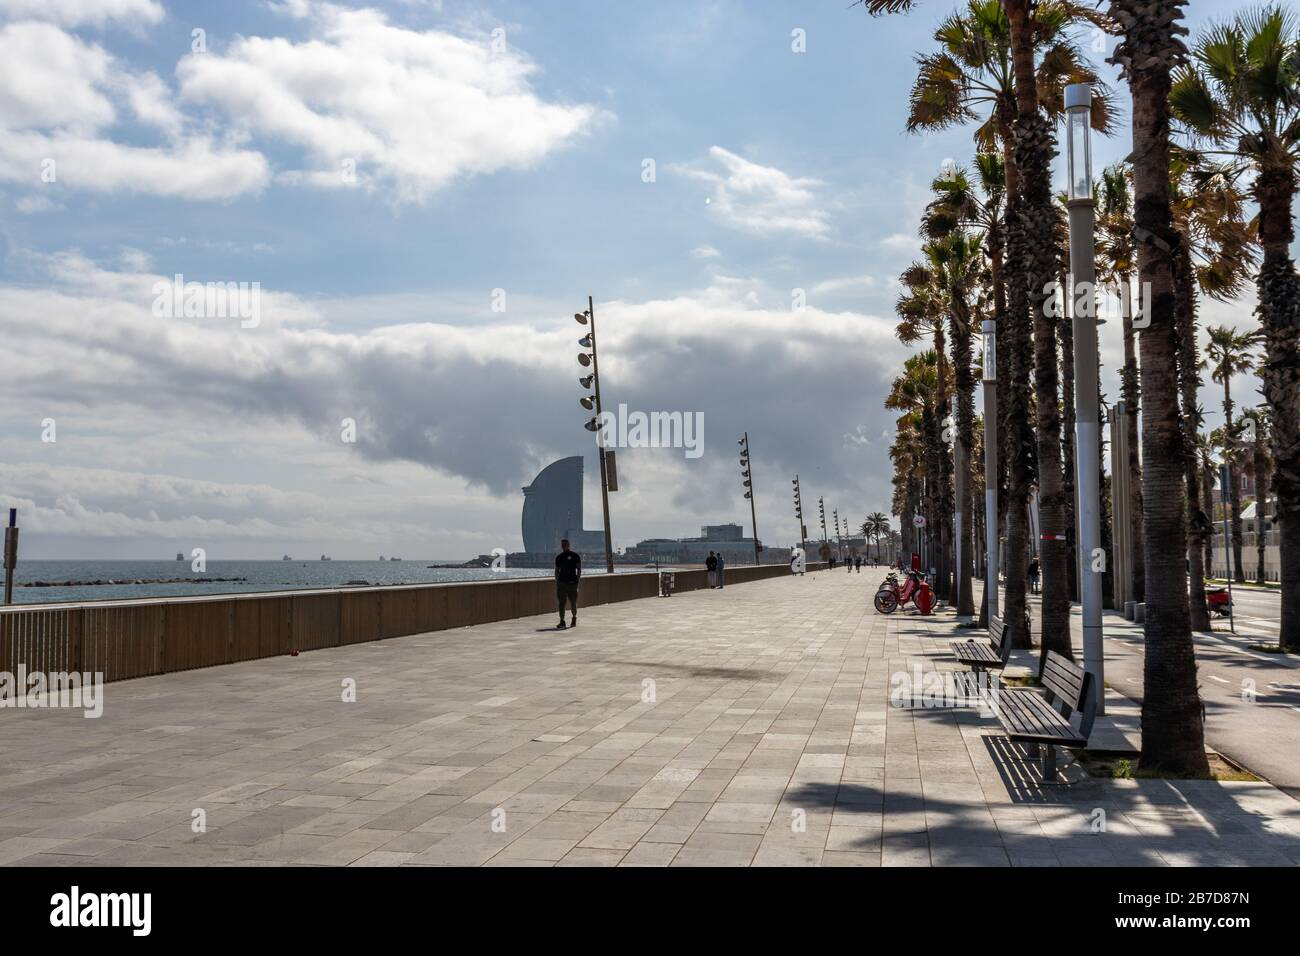 Barcelona Spain 15th March 2020 Empty Beach Of Barcelona After Spanish Government Decided To Confine The Whole Country To Reduce Coronavirus Infections Credit Dino Geromella Alamy Live News Stock Photo Alamy